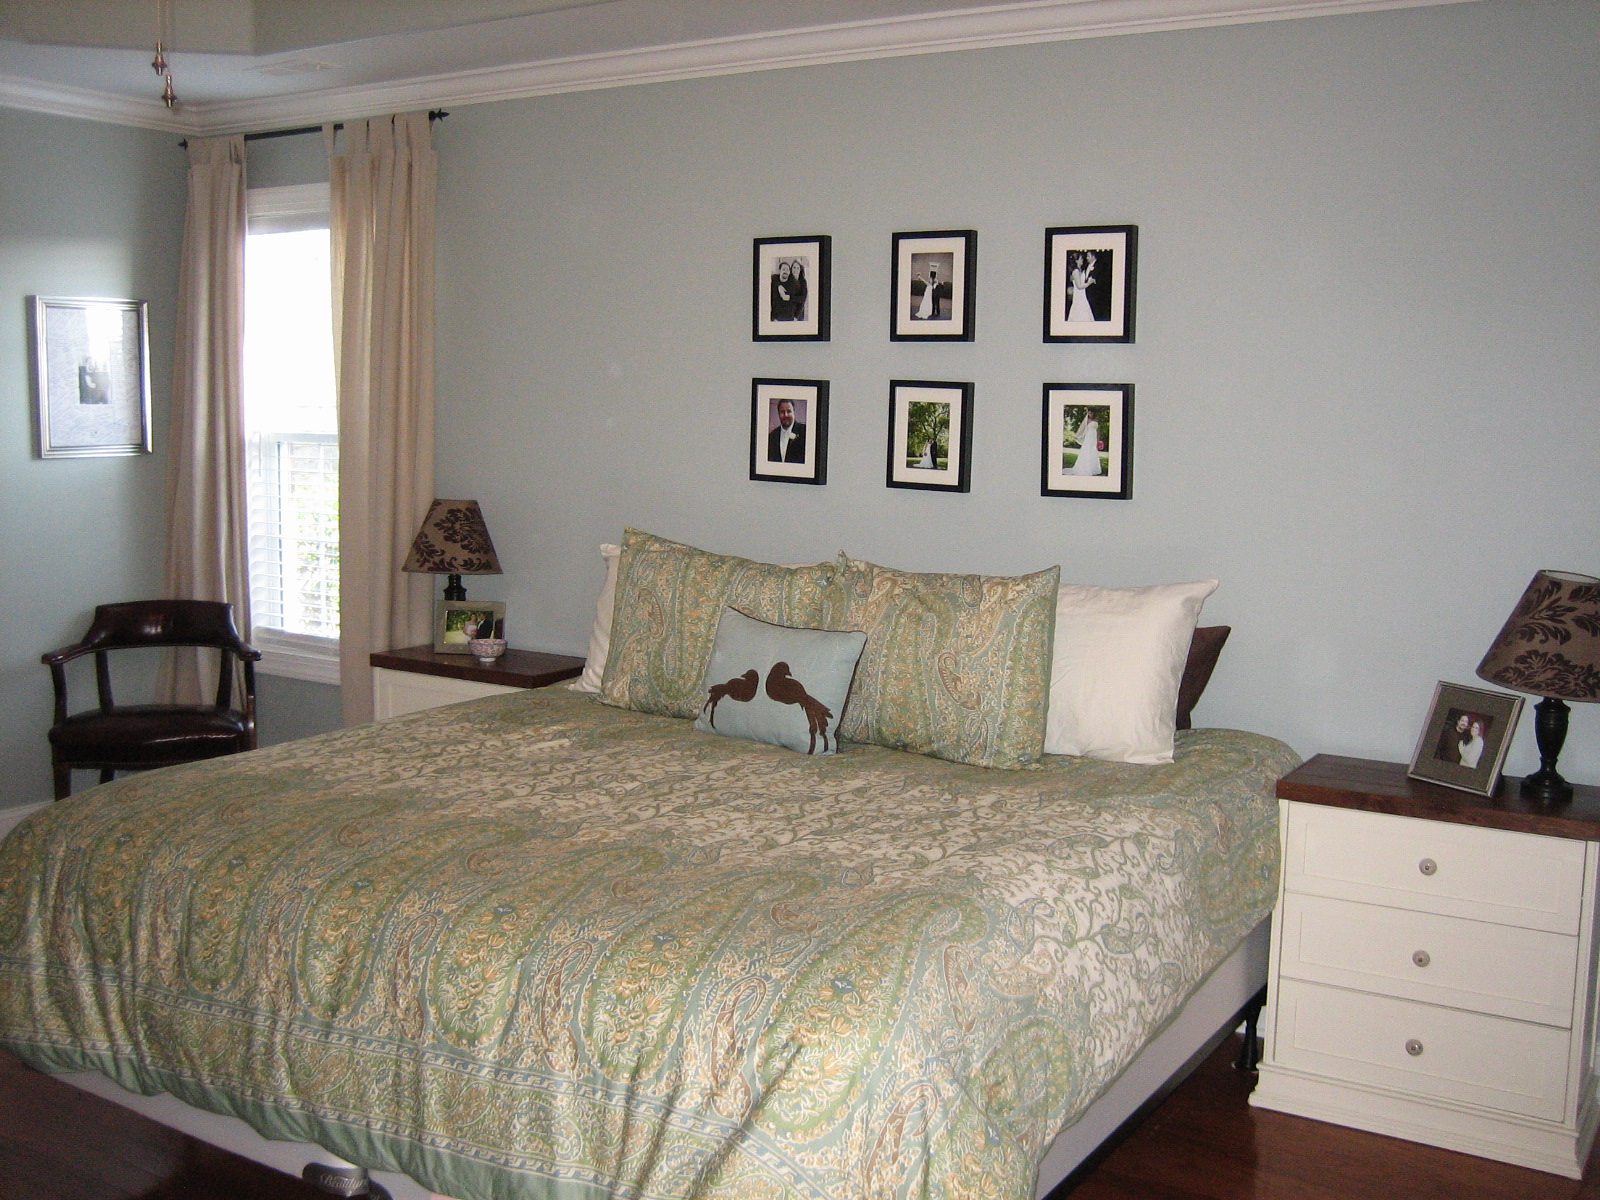 Master Bedroom Update PB Colette bedding and a new bed